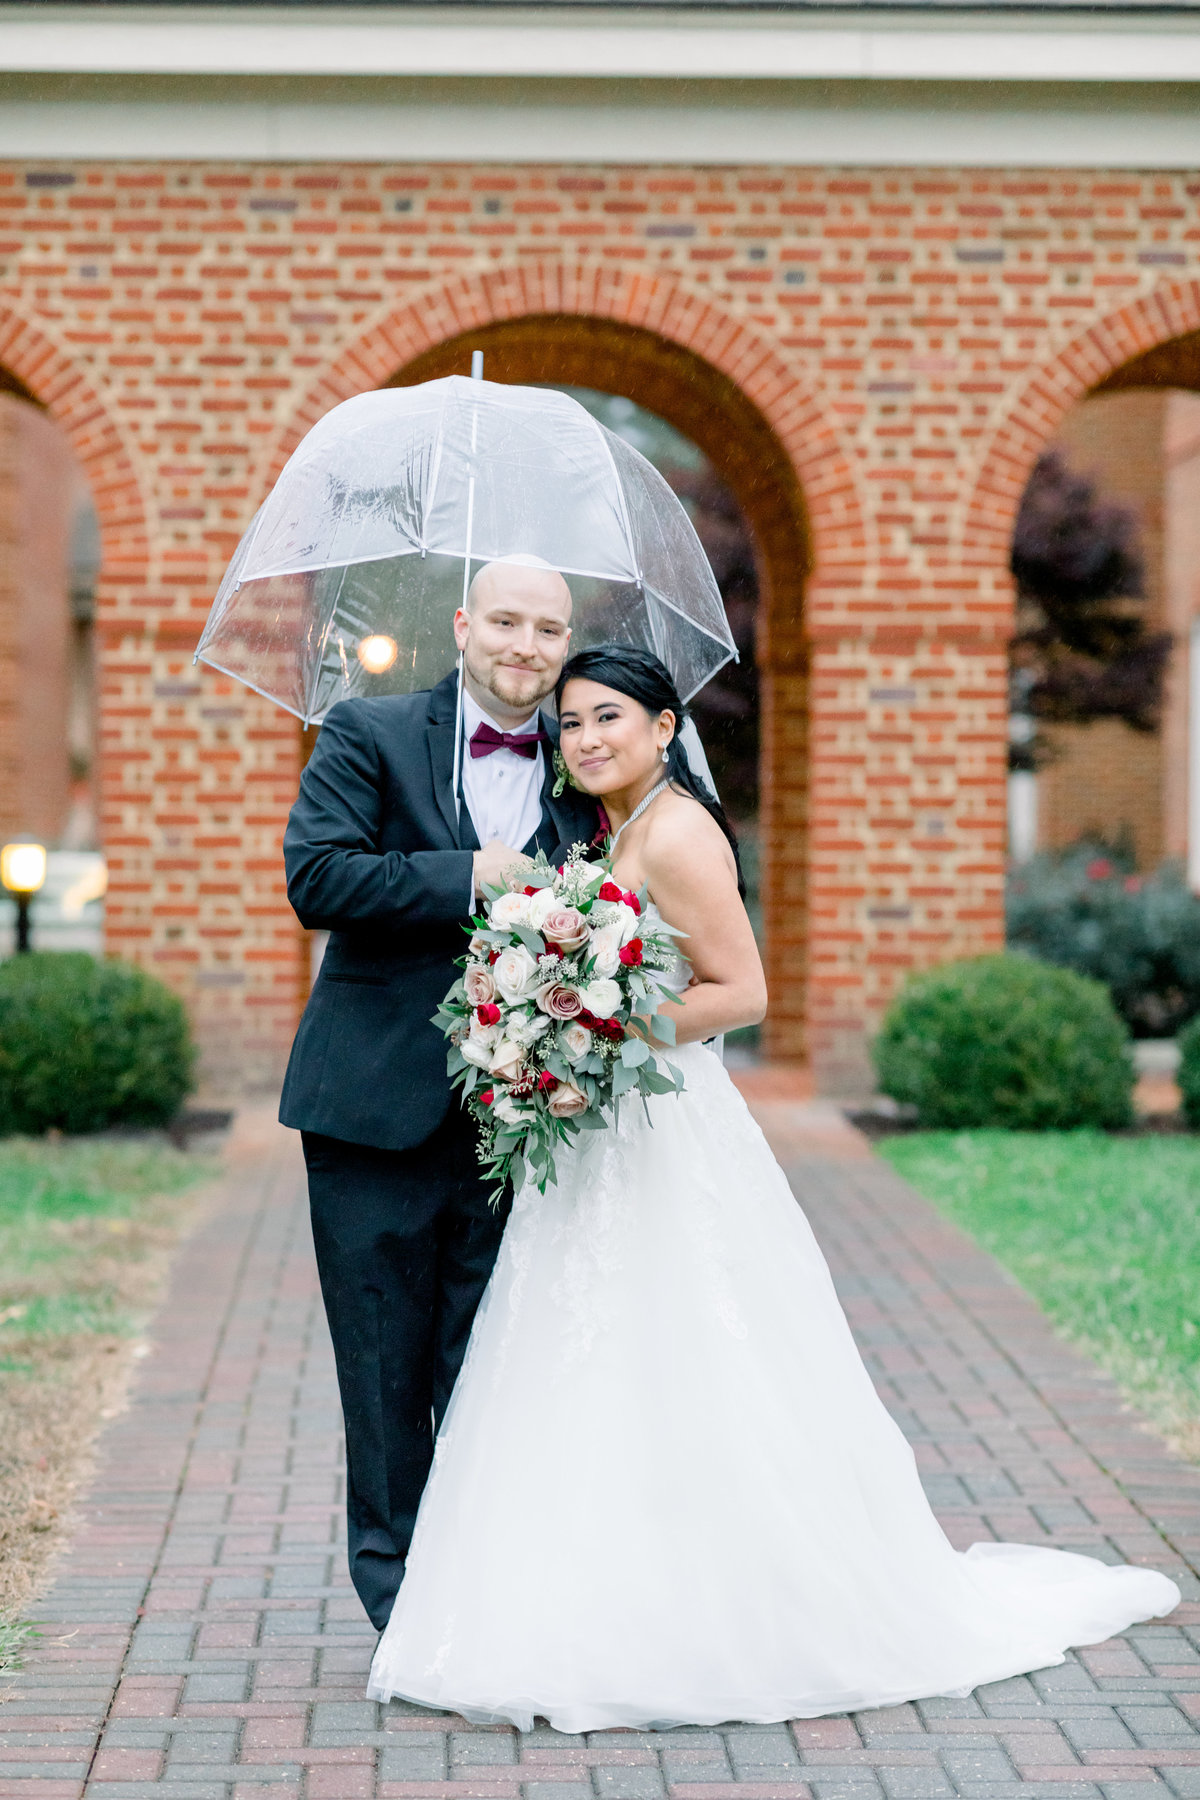 Washington DC Wedding Photography, bride and groom under an umbrella